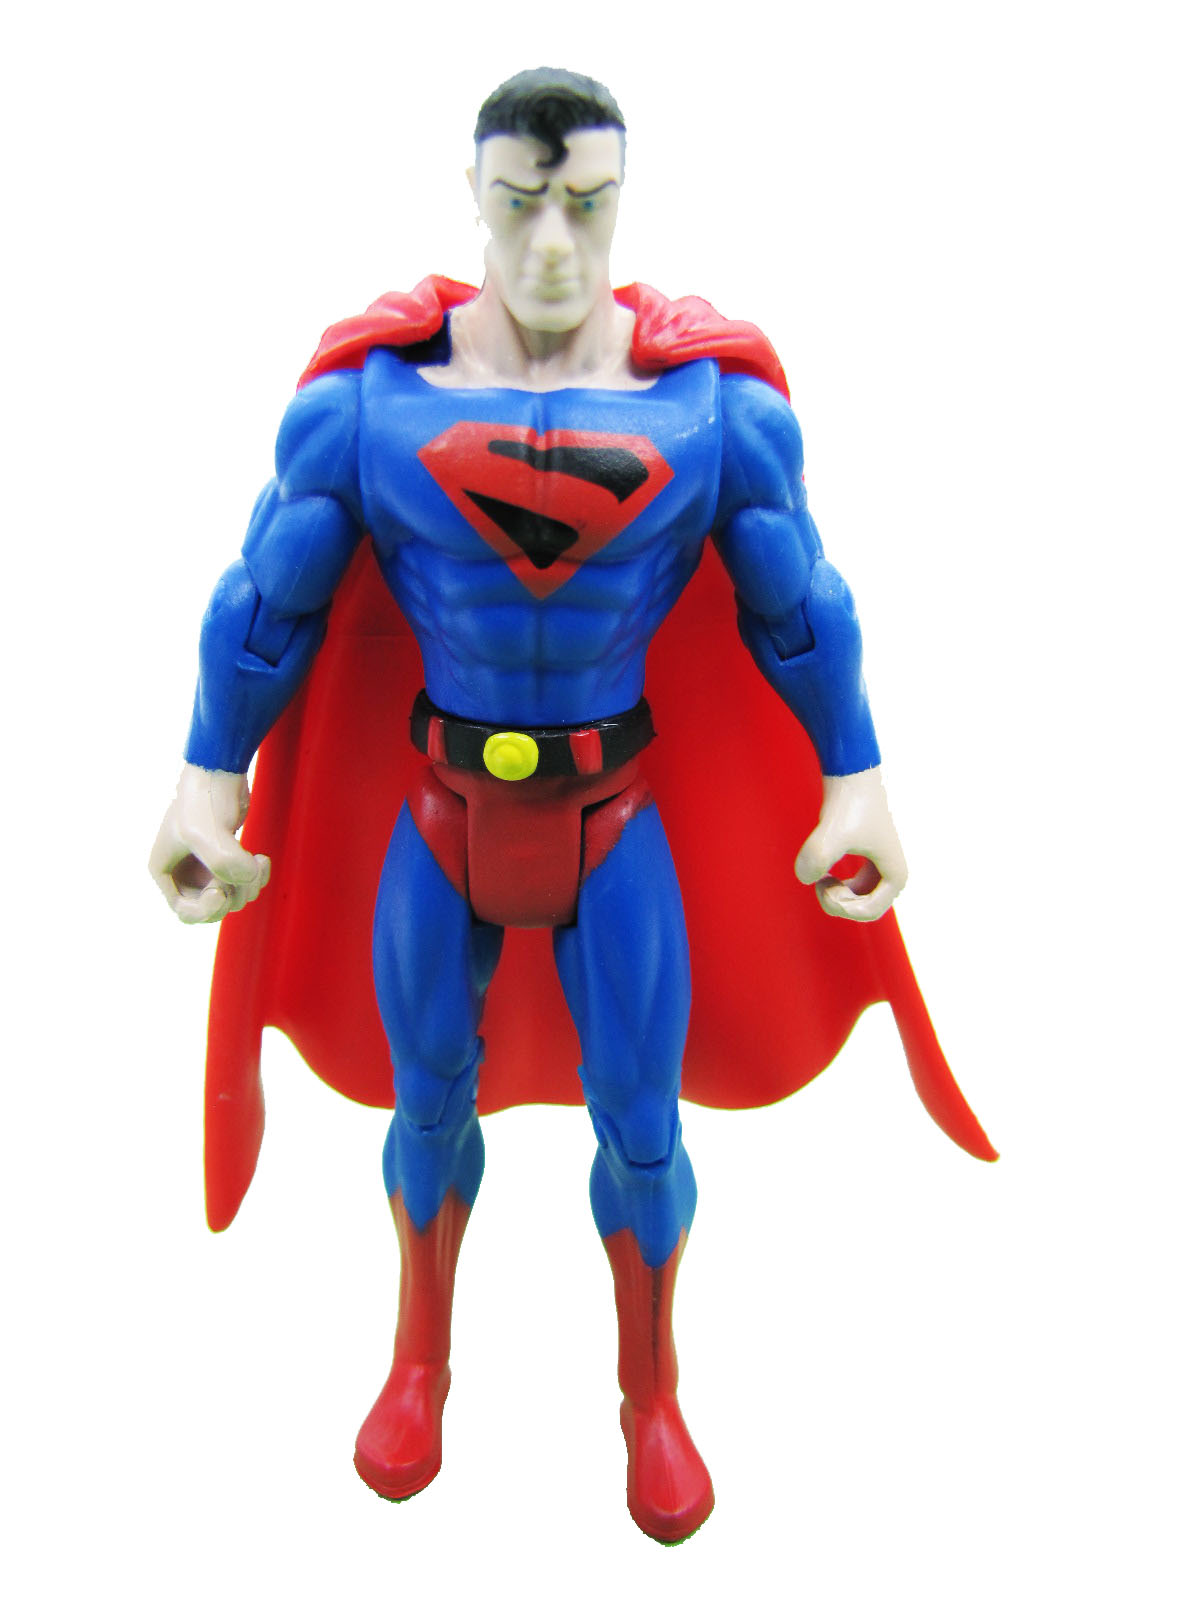 2008 DC Infinite Heroes BATTLE FOR METROPOLIS SUPERMAN Complete